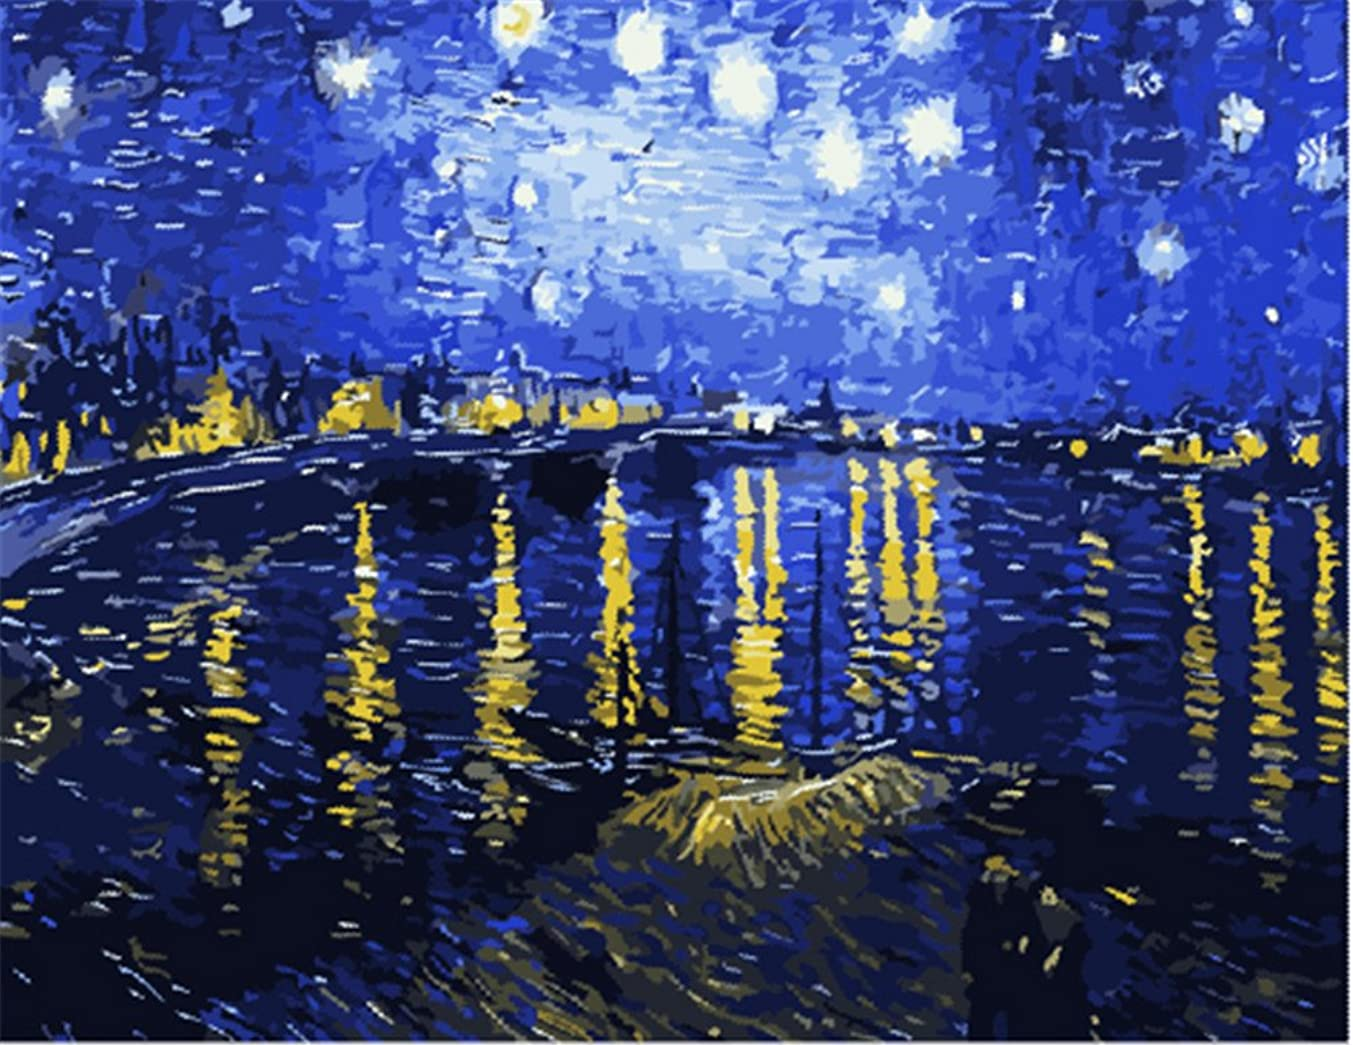 YEESAM Art New DIY Paint by Number Kits for Adults Kids Beginner - Worldwide Famous Oil Painting by Van Gogh 16x20 inch Linen Canvas - Stress Less Number Painting Gifts (with Frame)